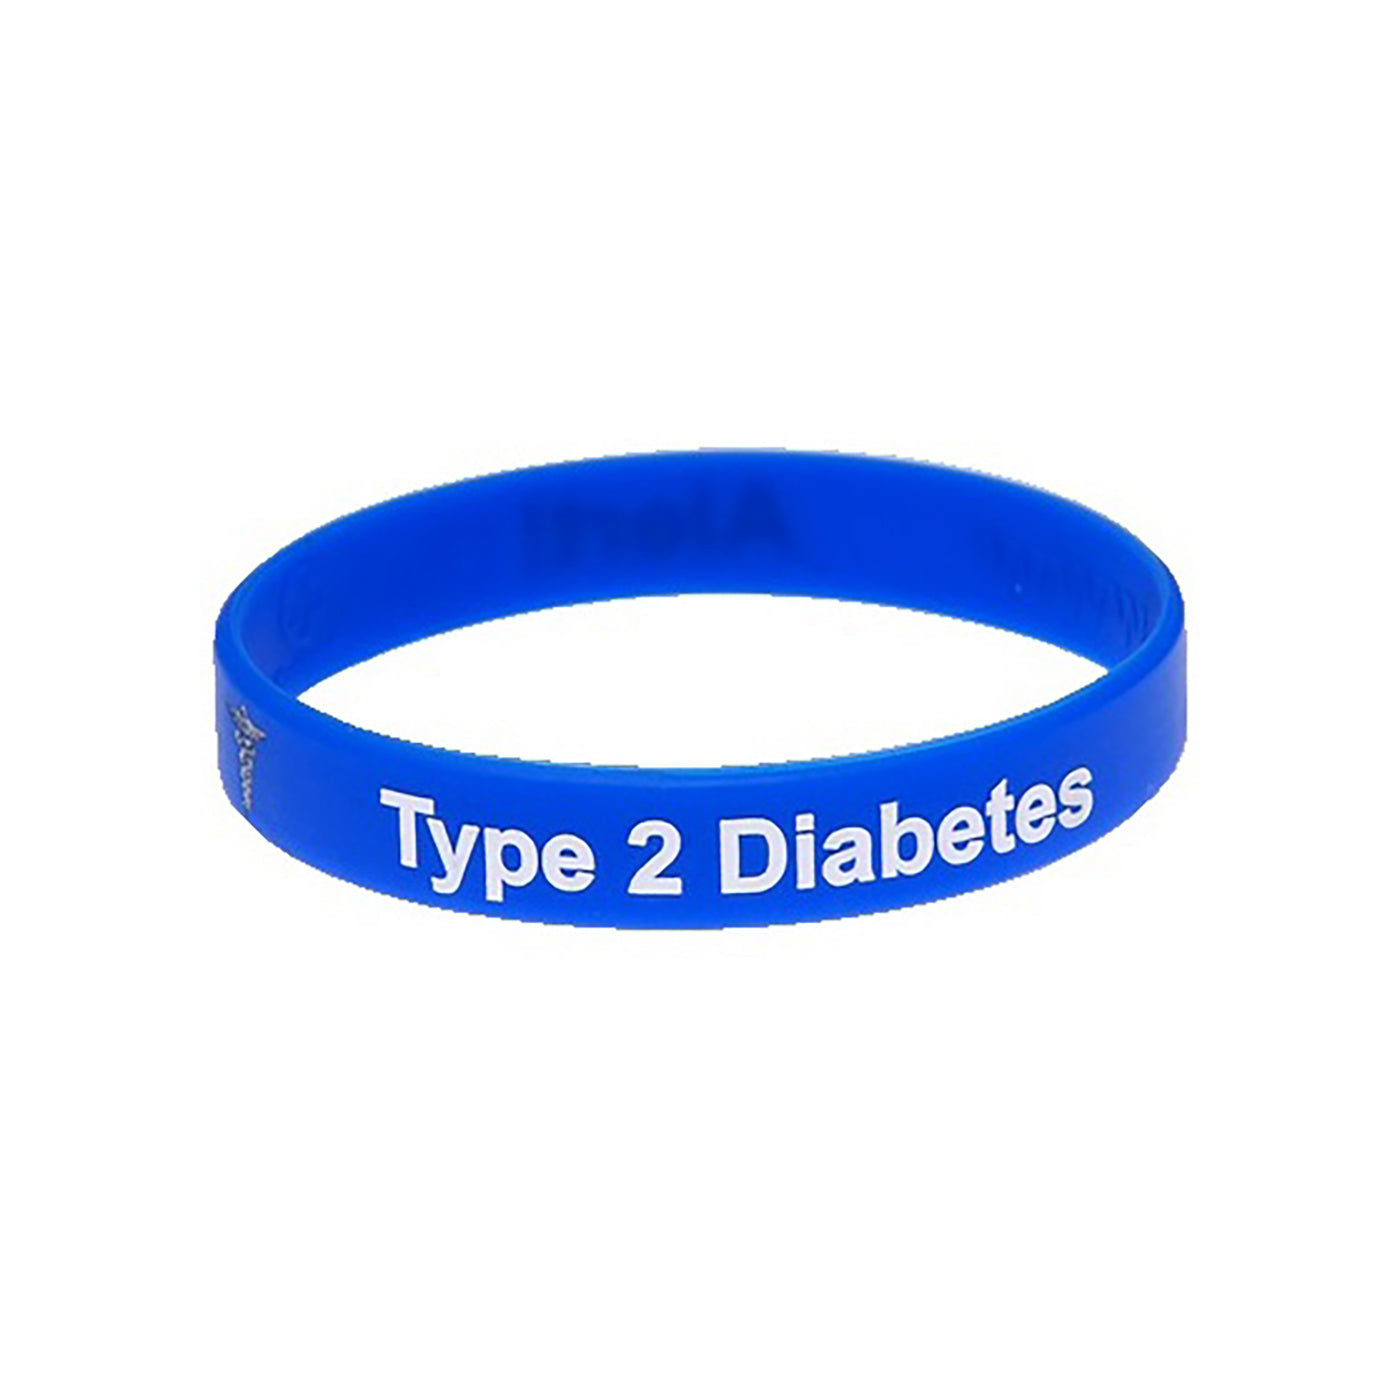 Mediband Type 2 Diabetes Wristband